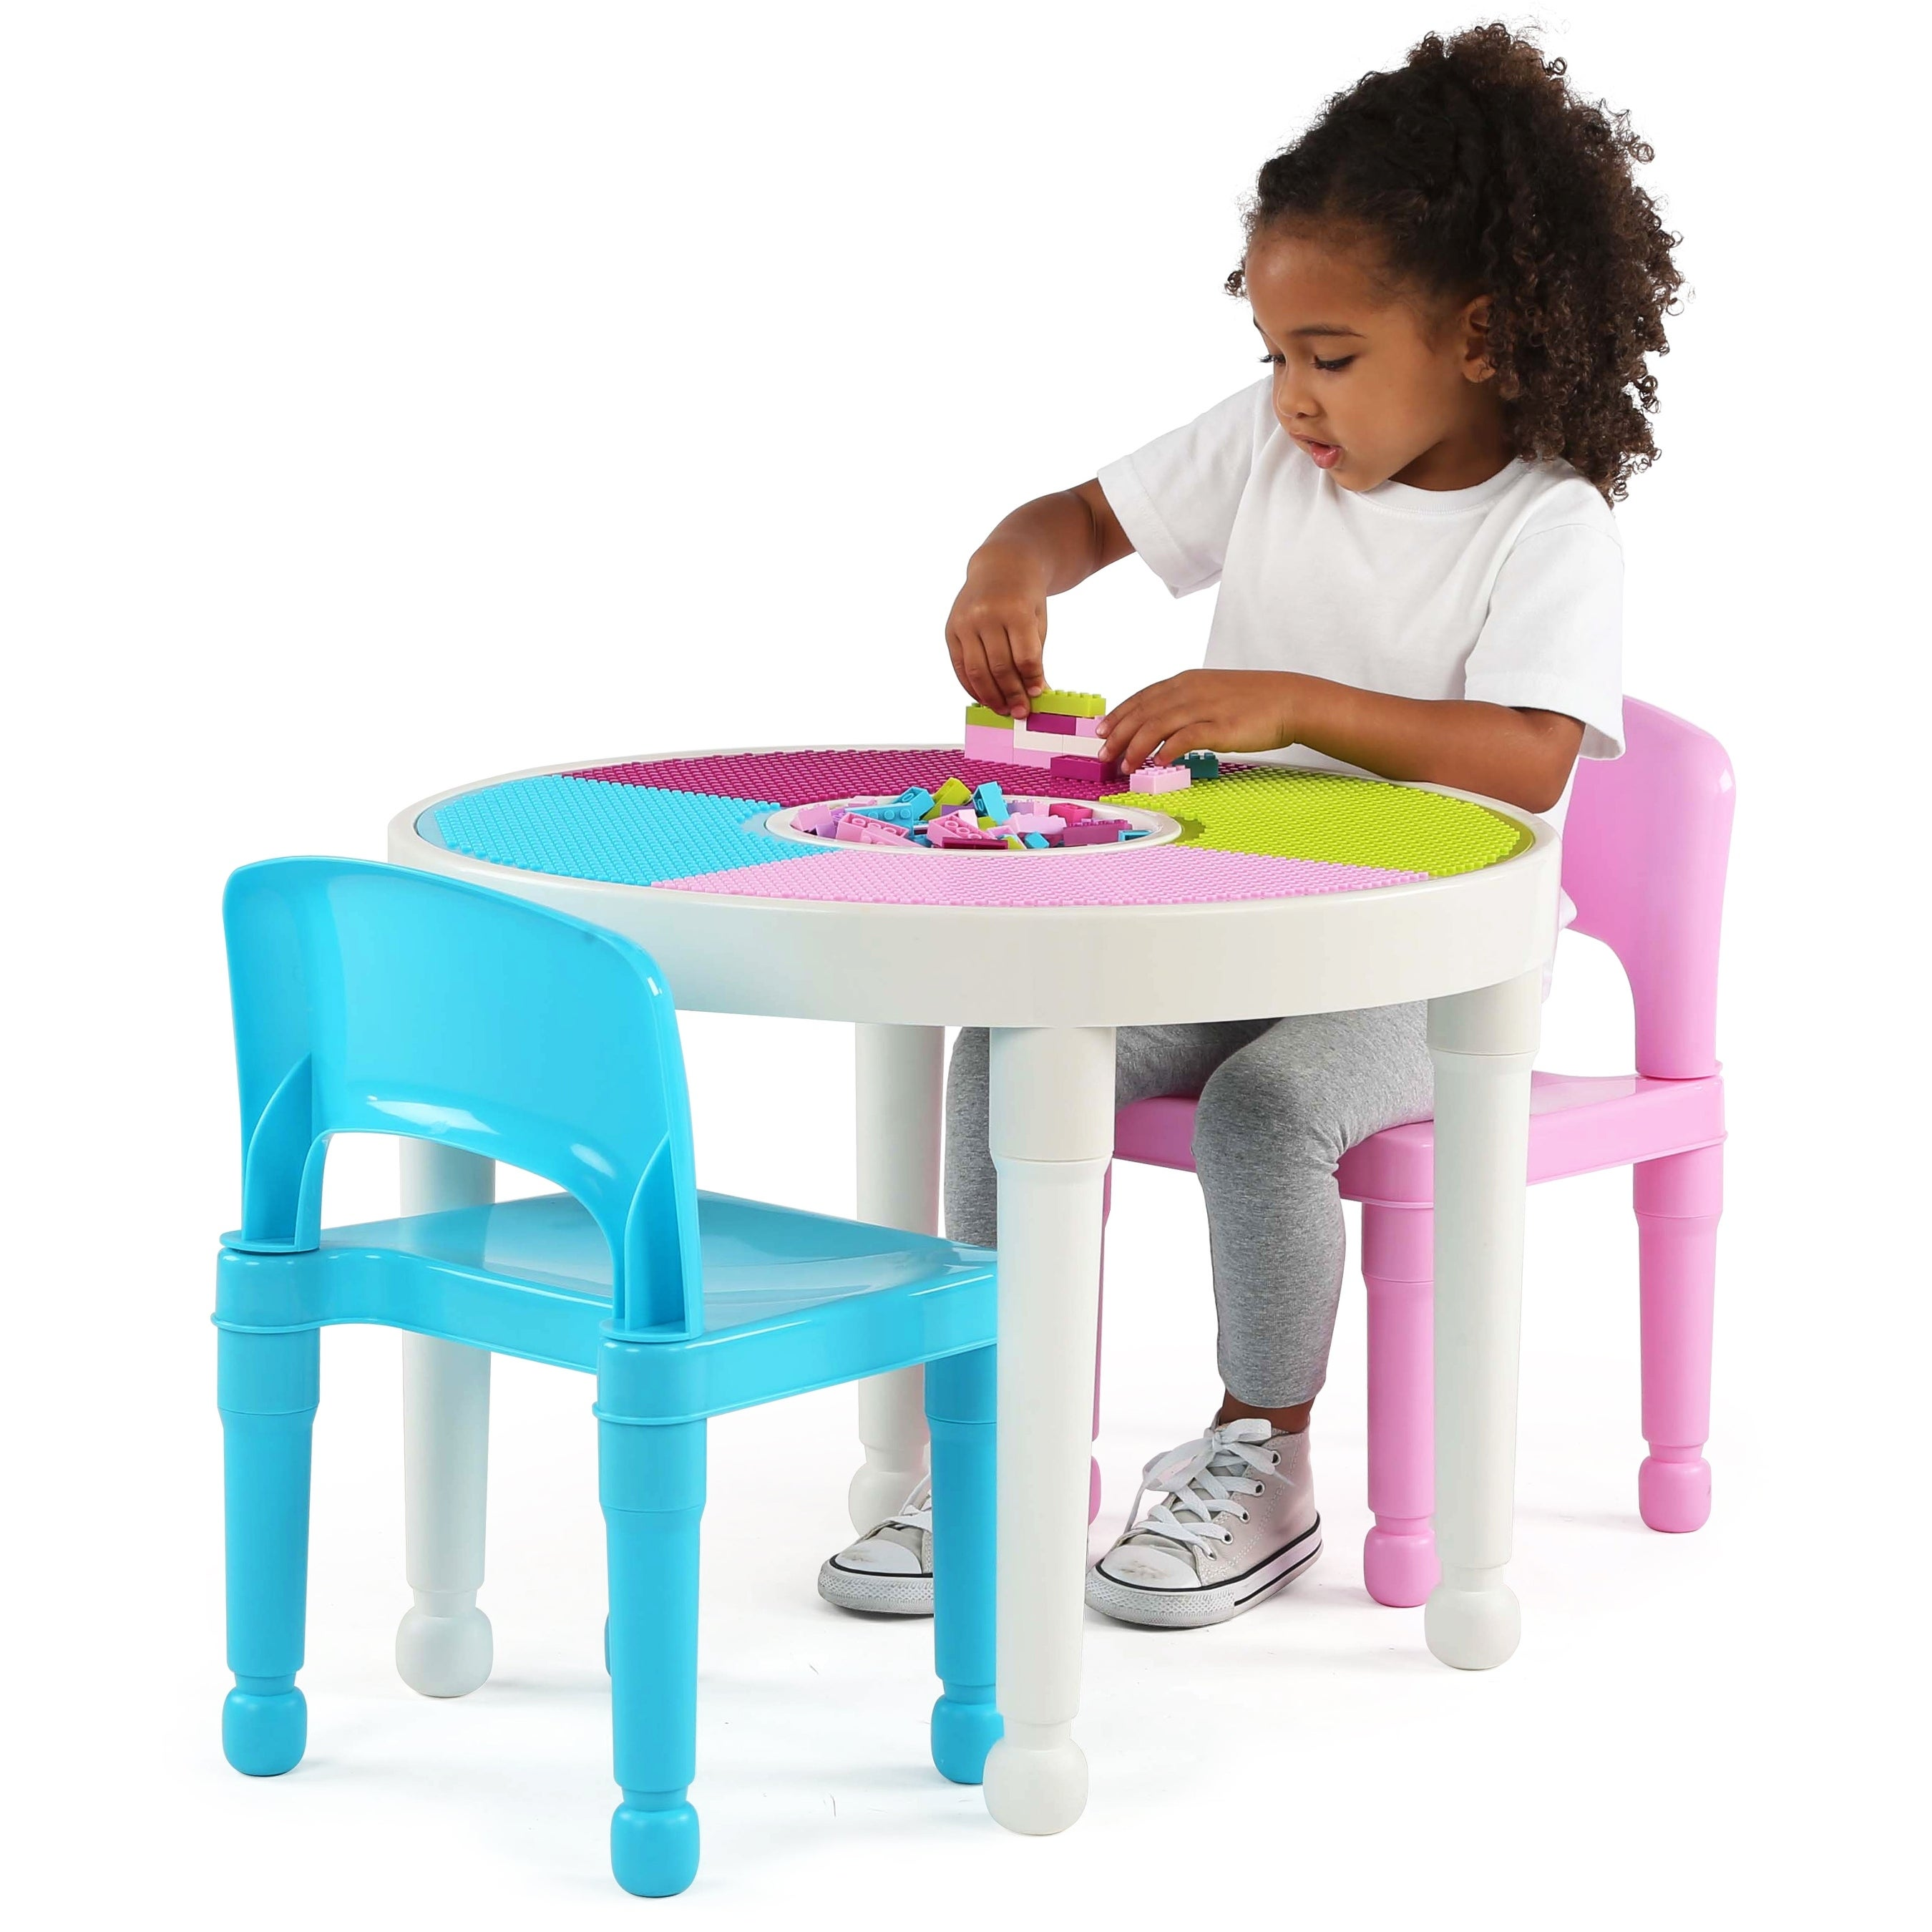 Shop Kids 2-in-1 Plastic Activity Table & 2 Chairs Set, White/Bright ...